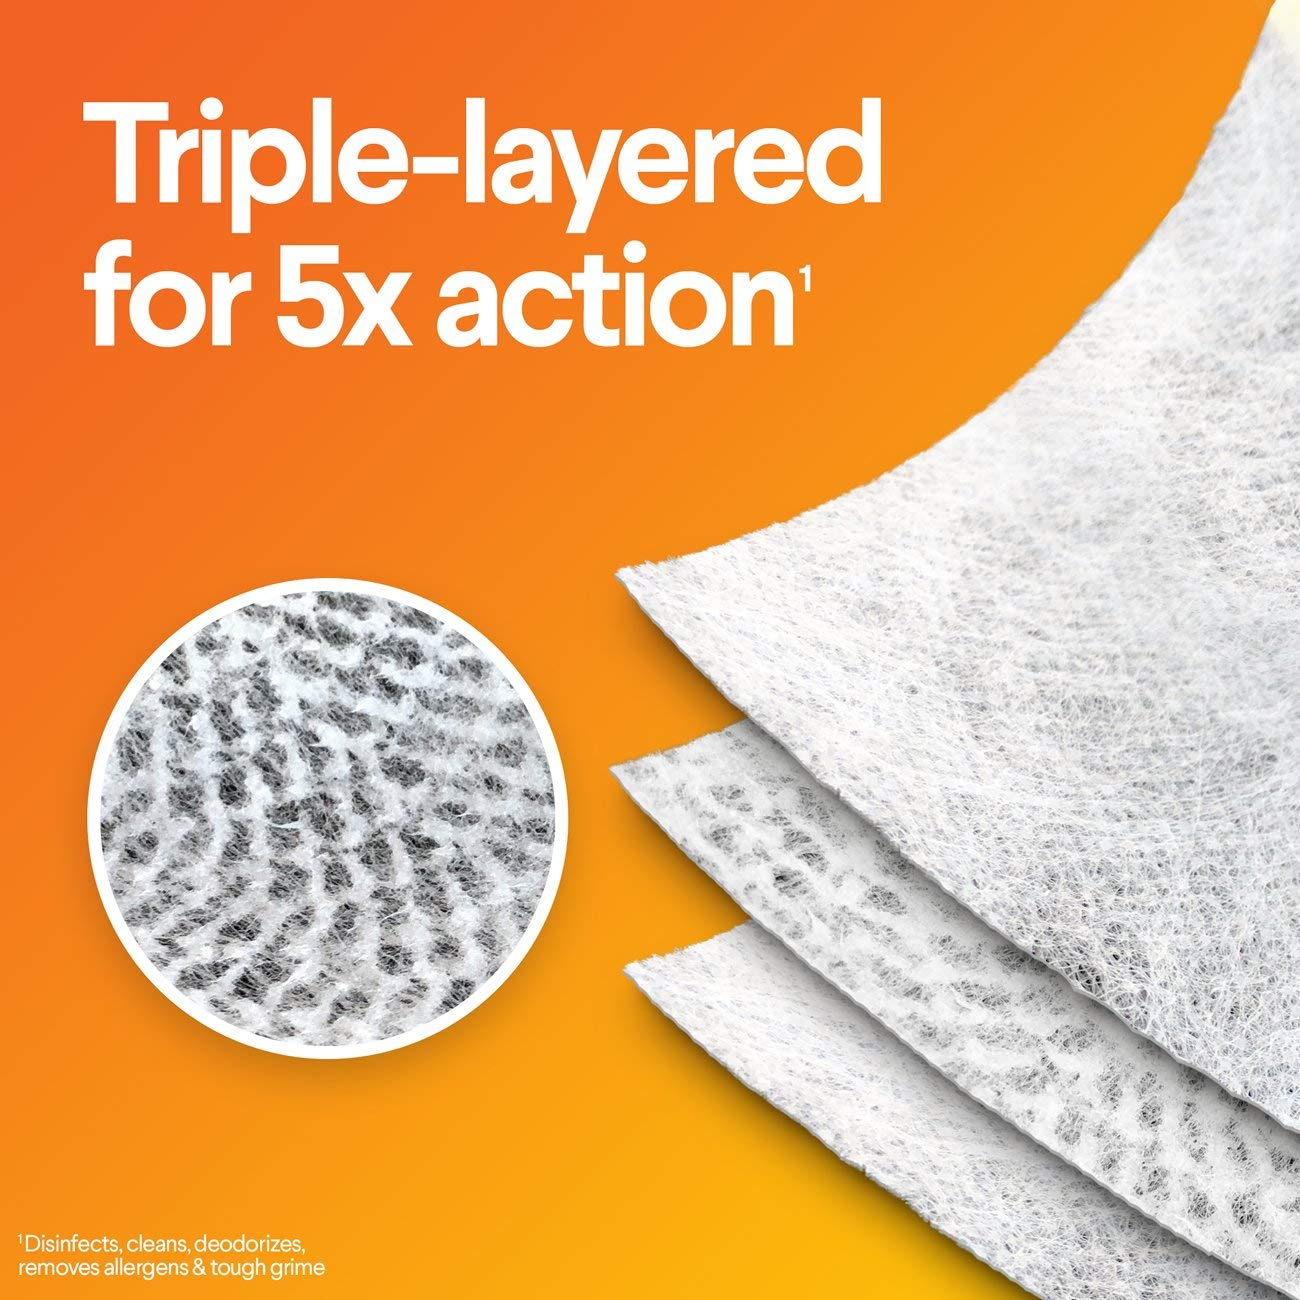 Crisp Lemon 70 Count Each Bleach Free Cleaning Wipes Pack of 3 Clorox Disinfecting Wipes with Micro-Scrubbers